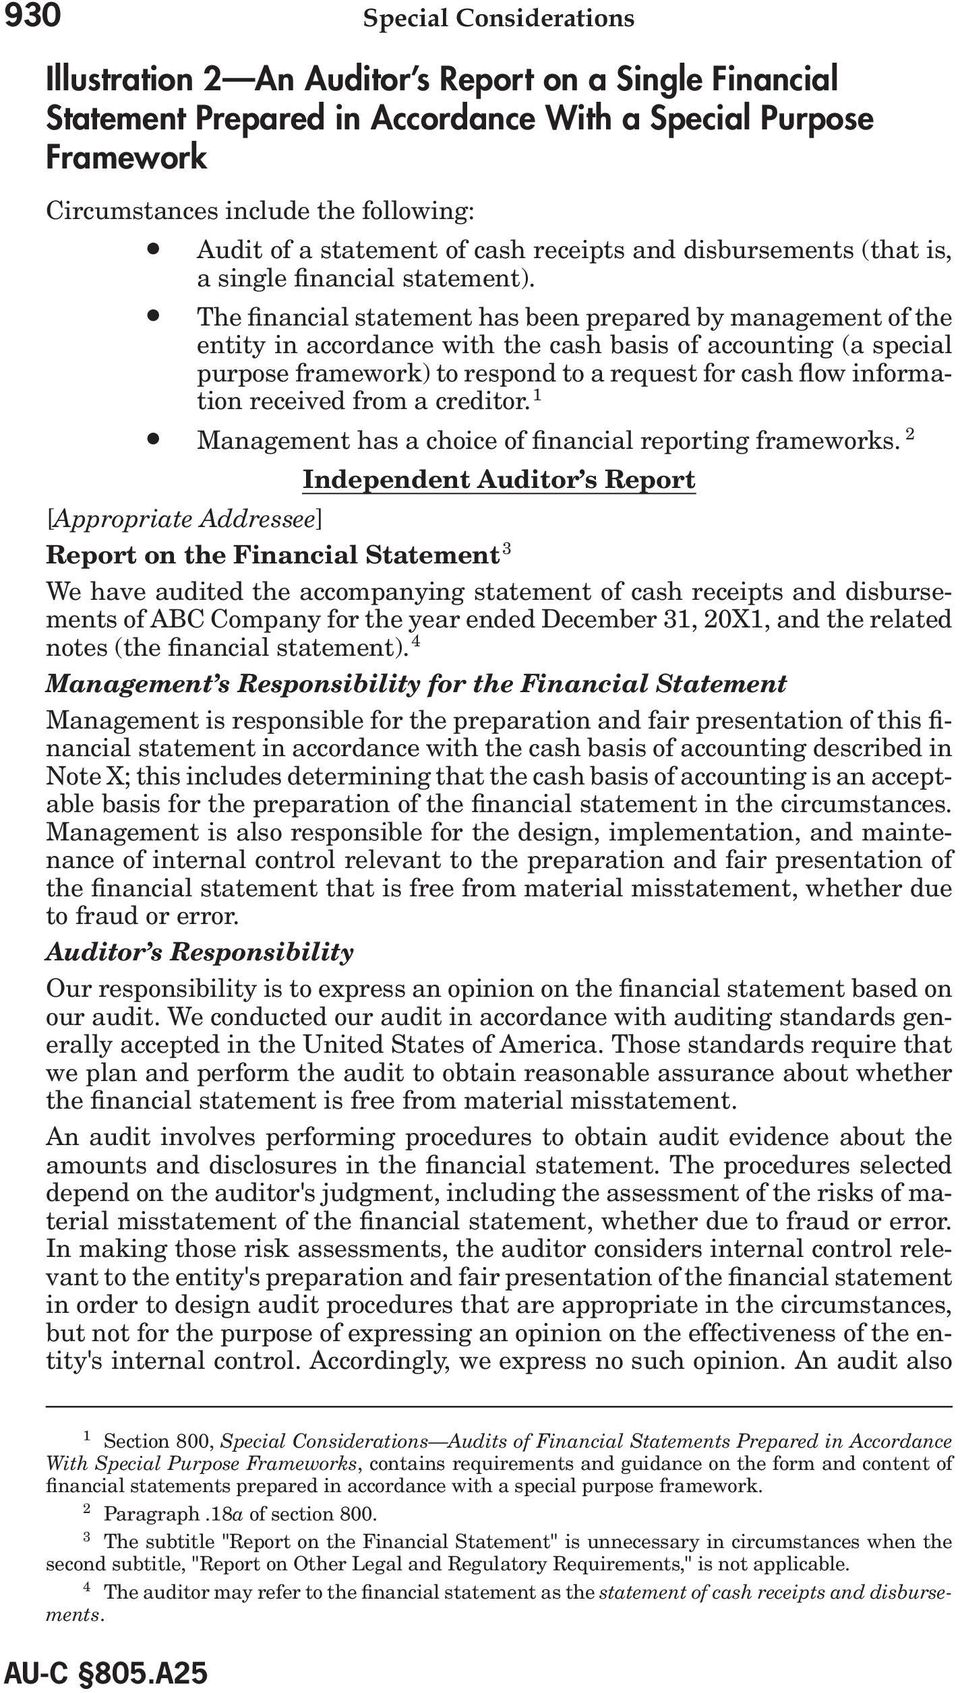 The financial statement has been prepared by management of the entity in accordance with the cash basis of accounting (a special purpose framework) to respond to a request for cash flow information